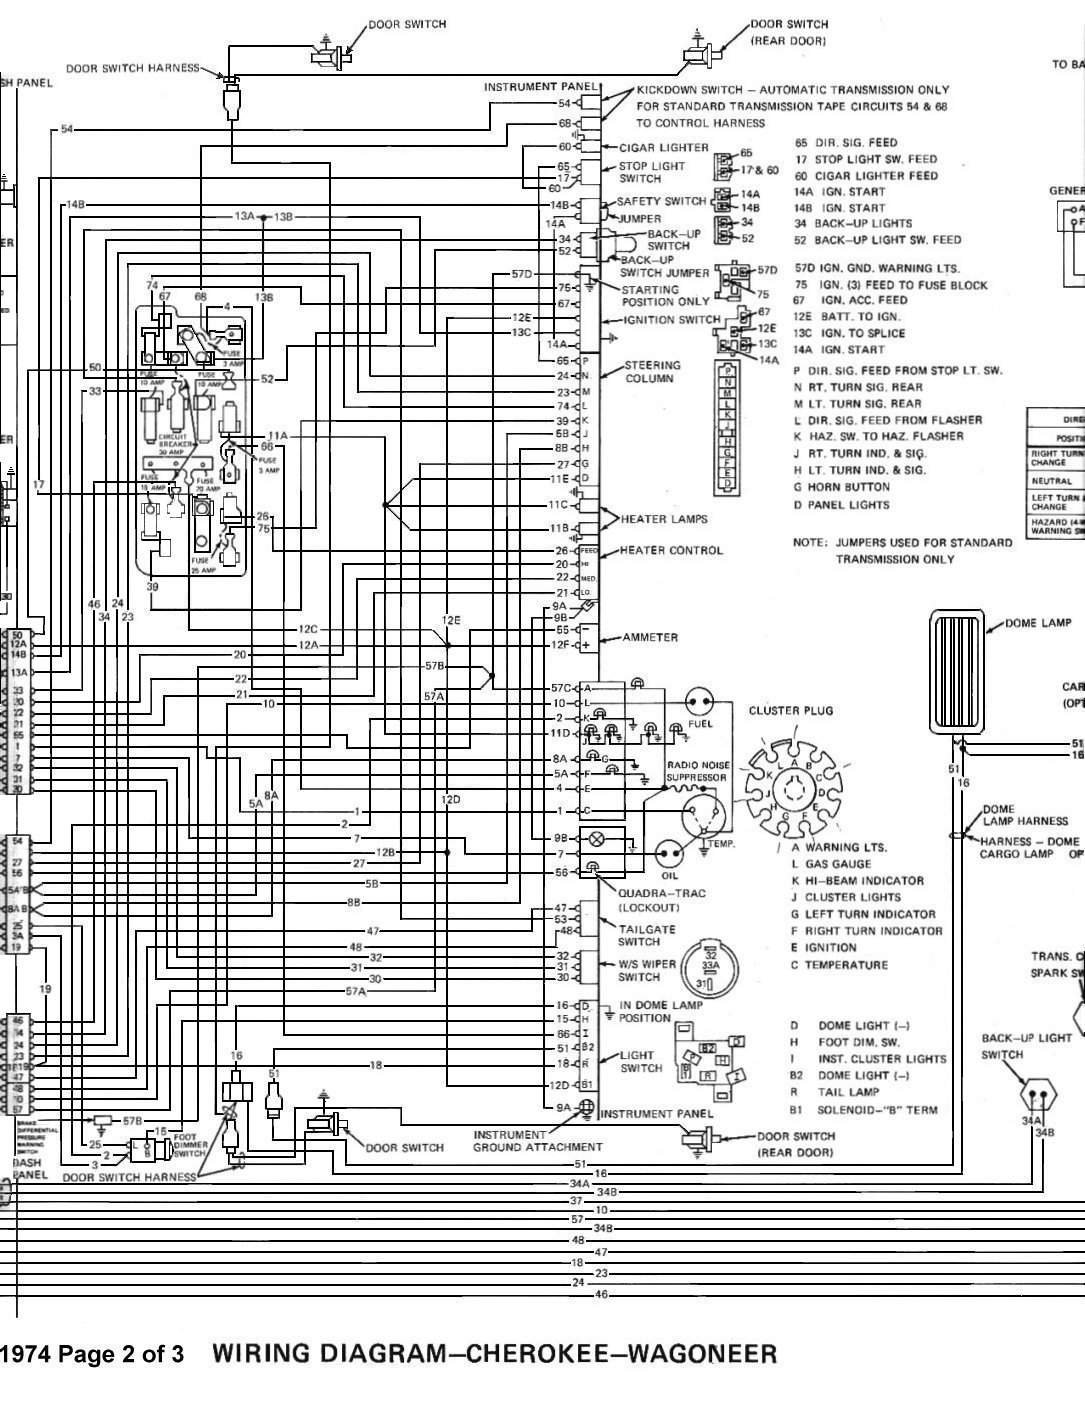 Tom Oljeep Collins Fsj Wiring Page 69 Gm Diagrams For Dummies 74 Wiringdiagrampage2